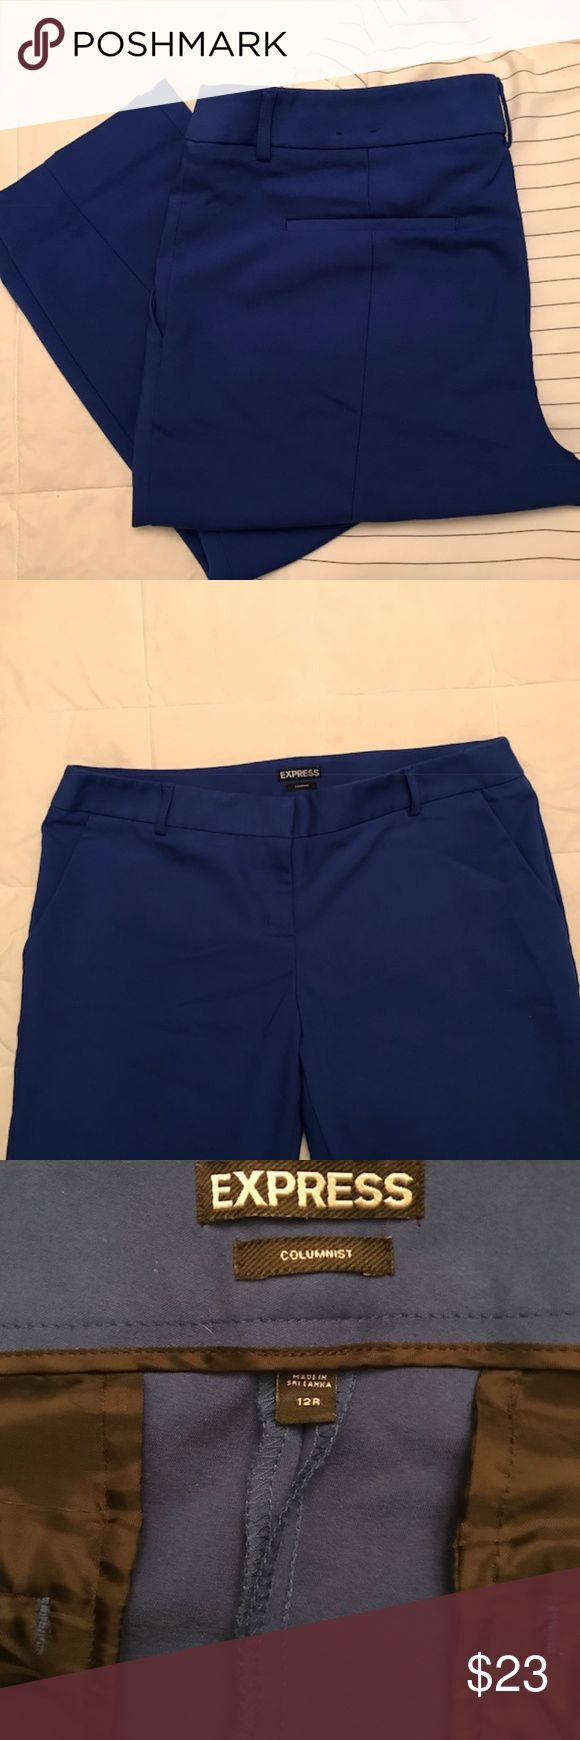 """Express Mid Rise Ankle  Columnist Pant Express Mid Rise Ankle  Columnist Pant. Mid-rise, slim fit. Zip fly and hidden hook closure. Slant hand pockets, welt back pockets. 34"""" waist, 36"""" long, 27"""" inseam. Polyester/Cotton/Elastane. Machine wash.  Great color for Spring! True to Express sizing. Very good used condition. Express Pants Ankle & Cropped"""